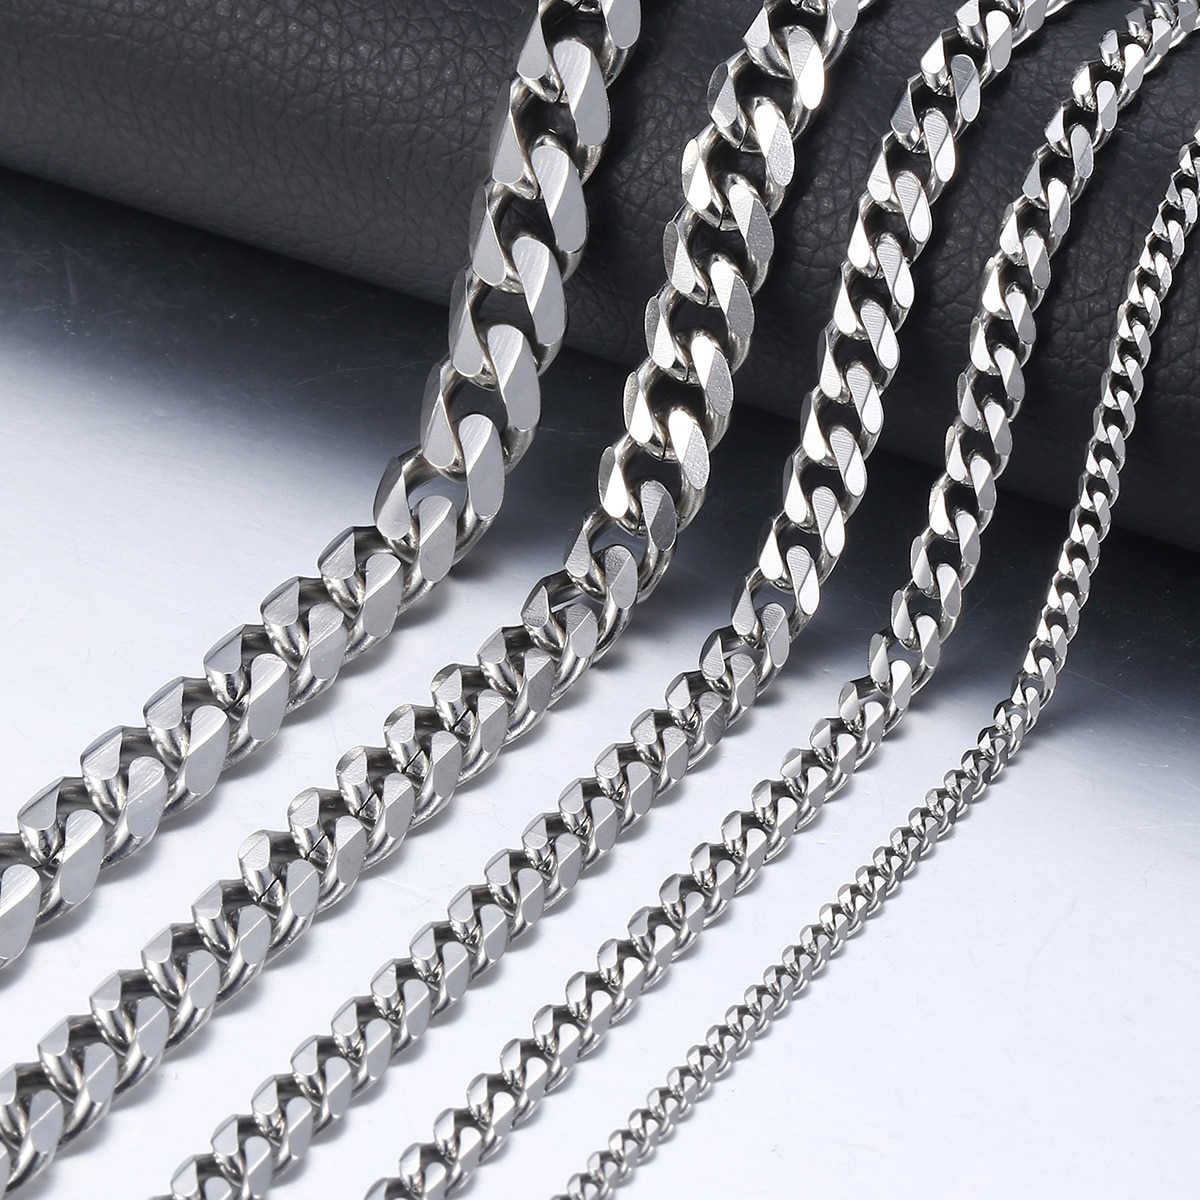 AliExpress - 3-9mm Men's Silver Color Necklace Stainless Steel Cuban Link Chain for Men Women Basic Black Gold Tone Chokers Jewelry KNM07